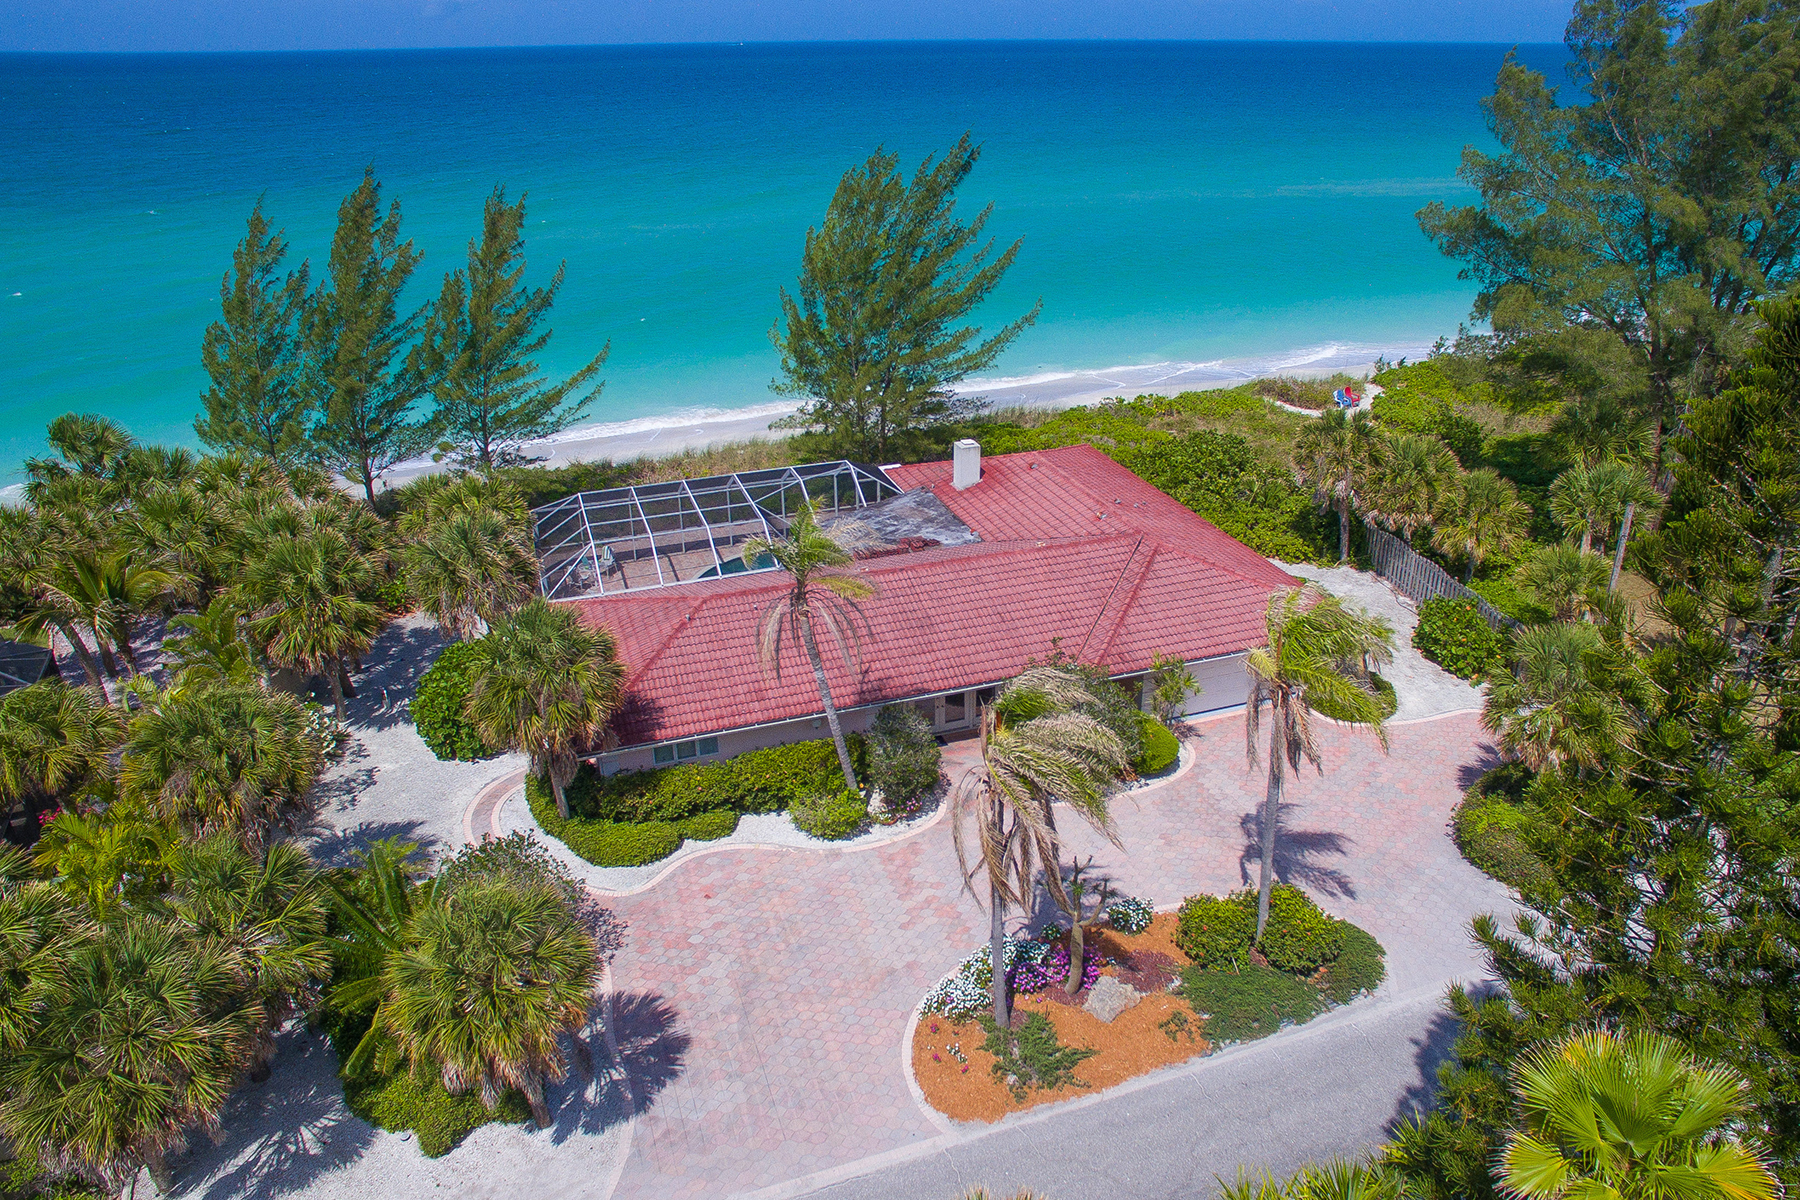 Single Family Home for Sale at CASEY KEY 3619 Casey Key Rd, Nokomis, Florida 34275 United States